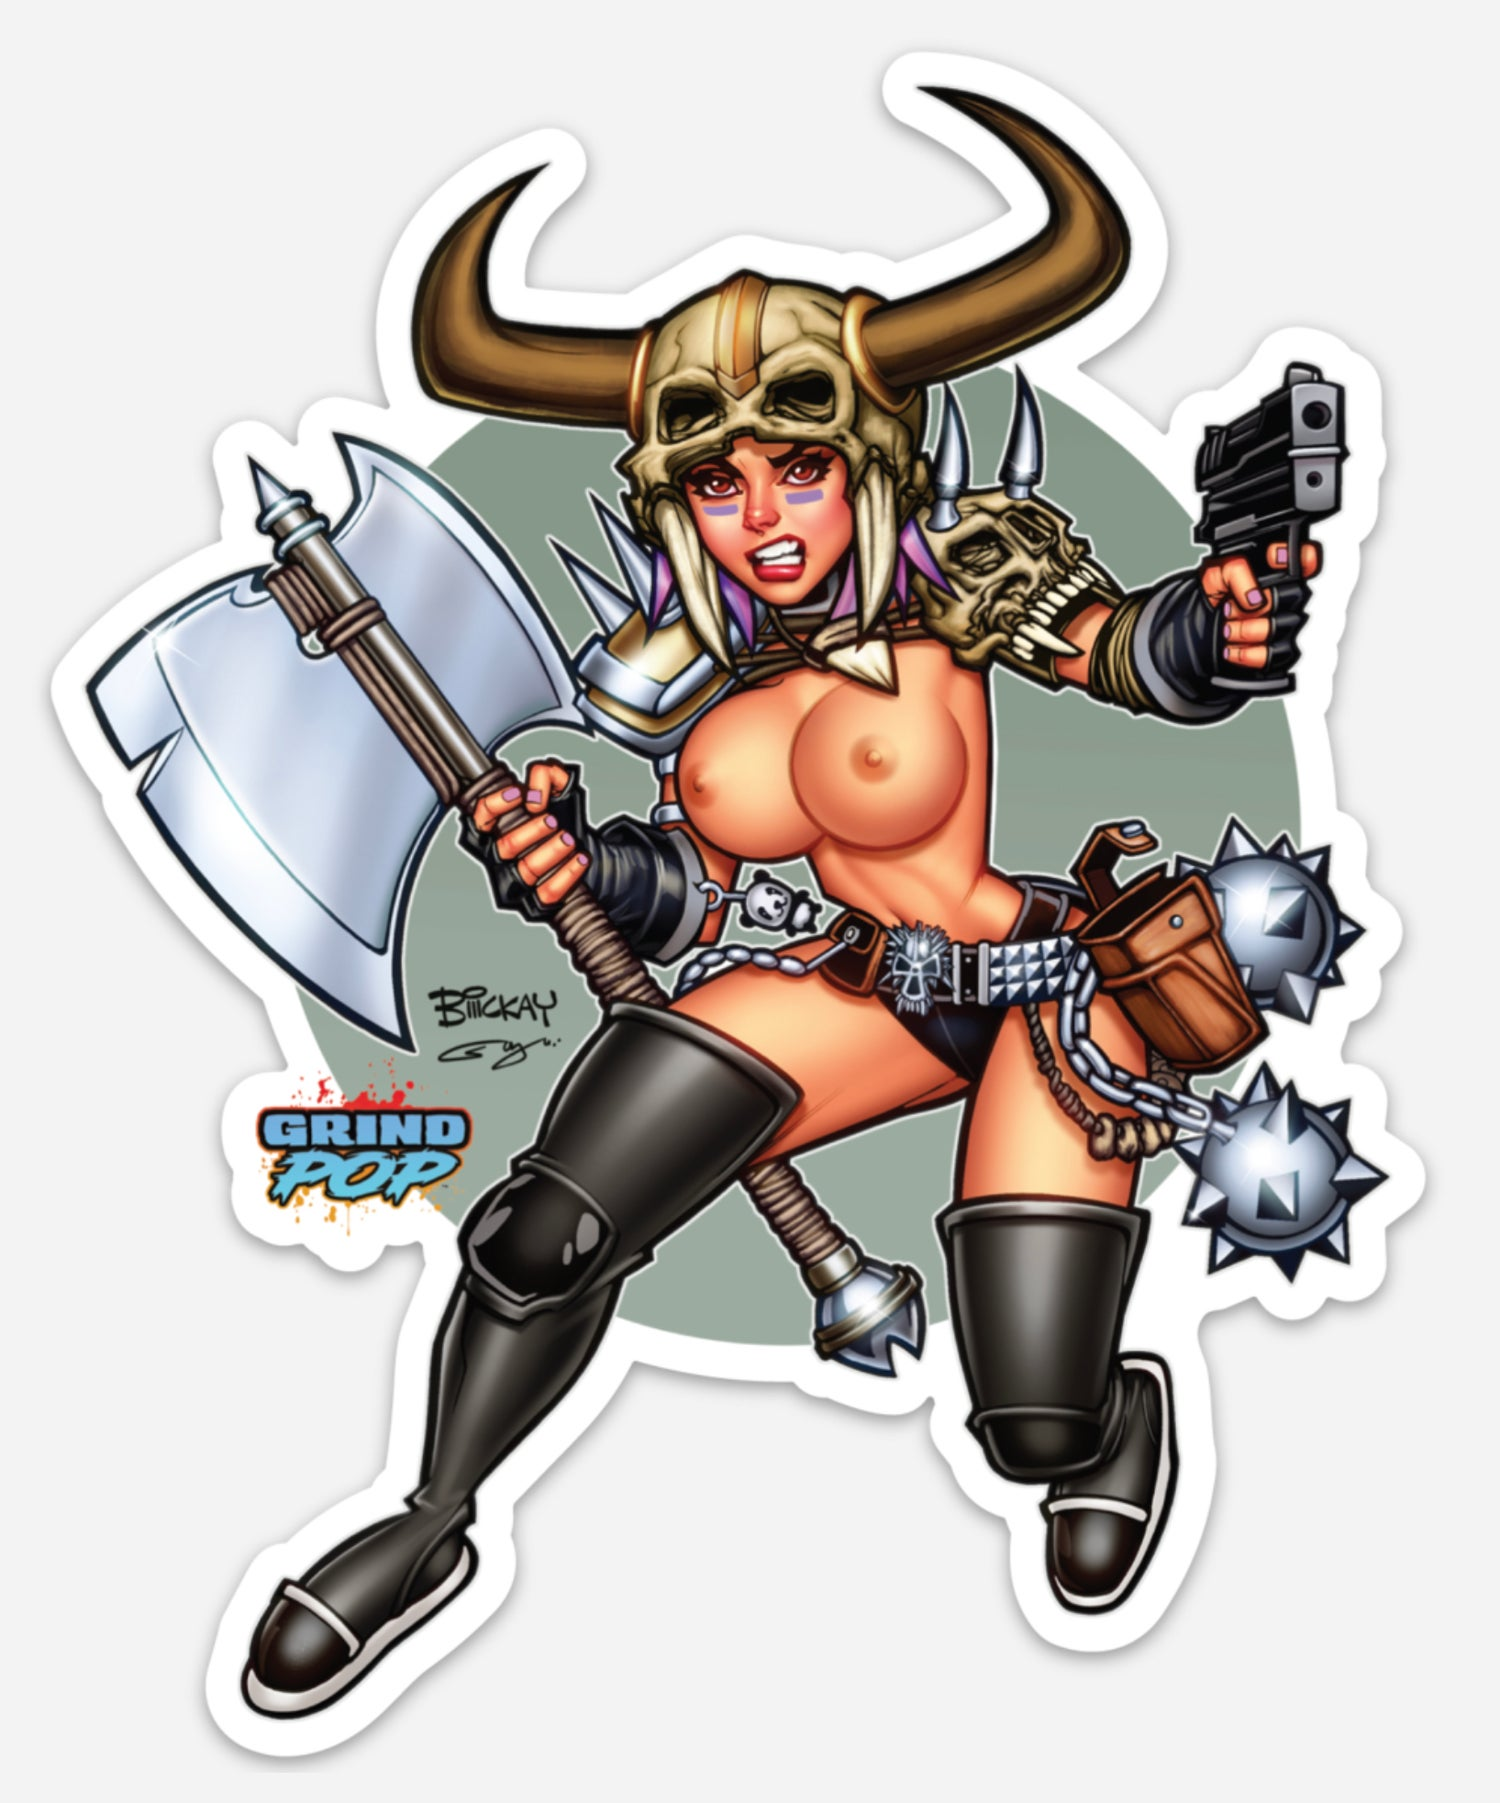 Image of Kim the Delusional Racy Die Cut Sticker